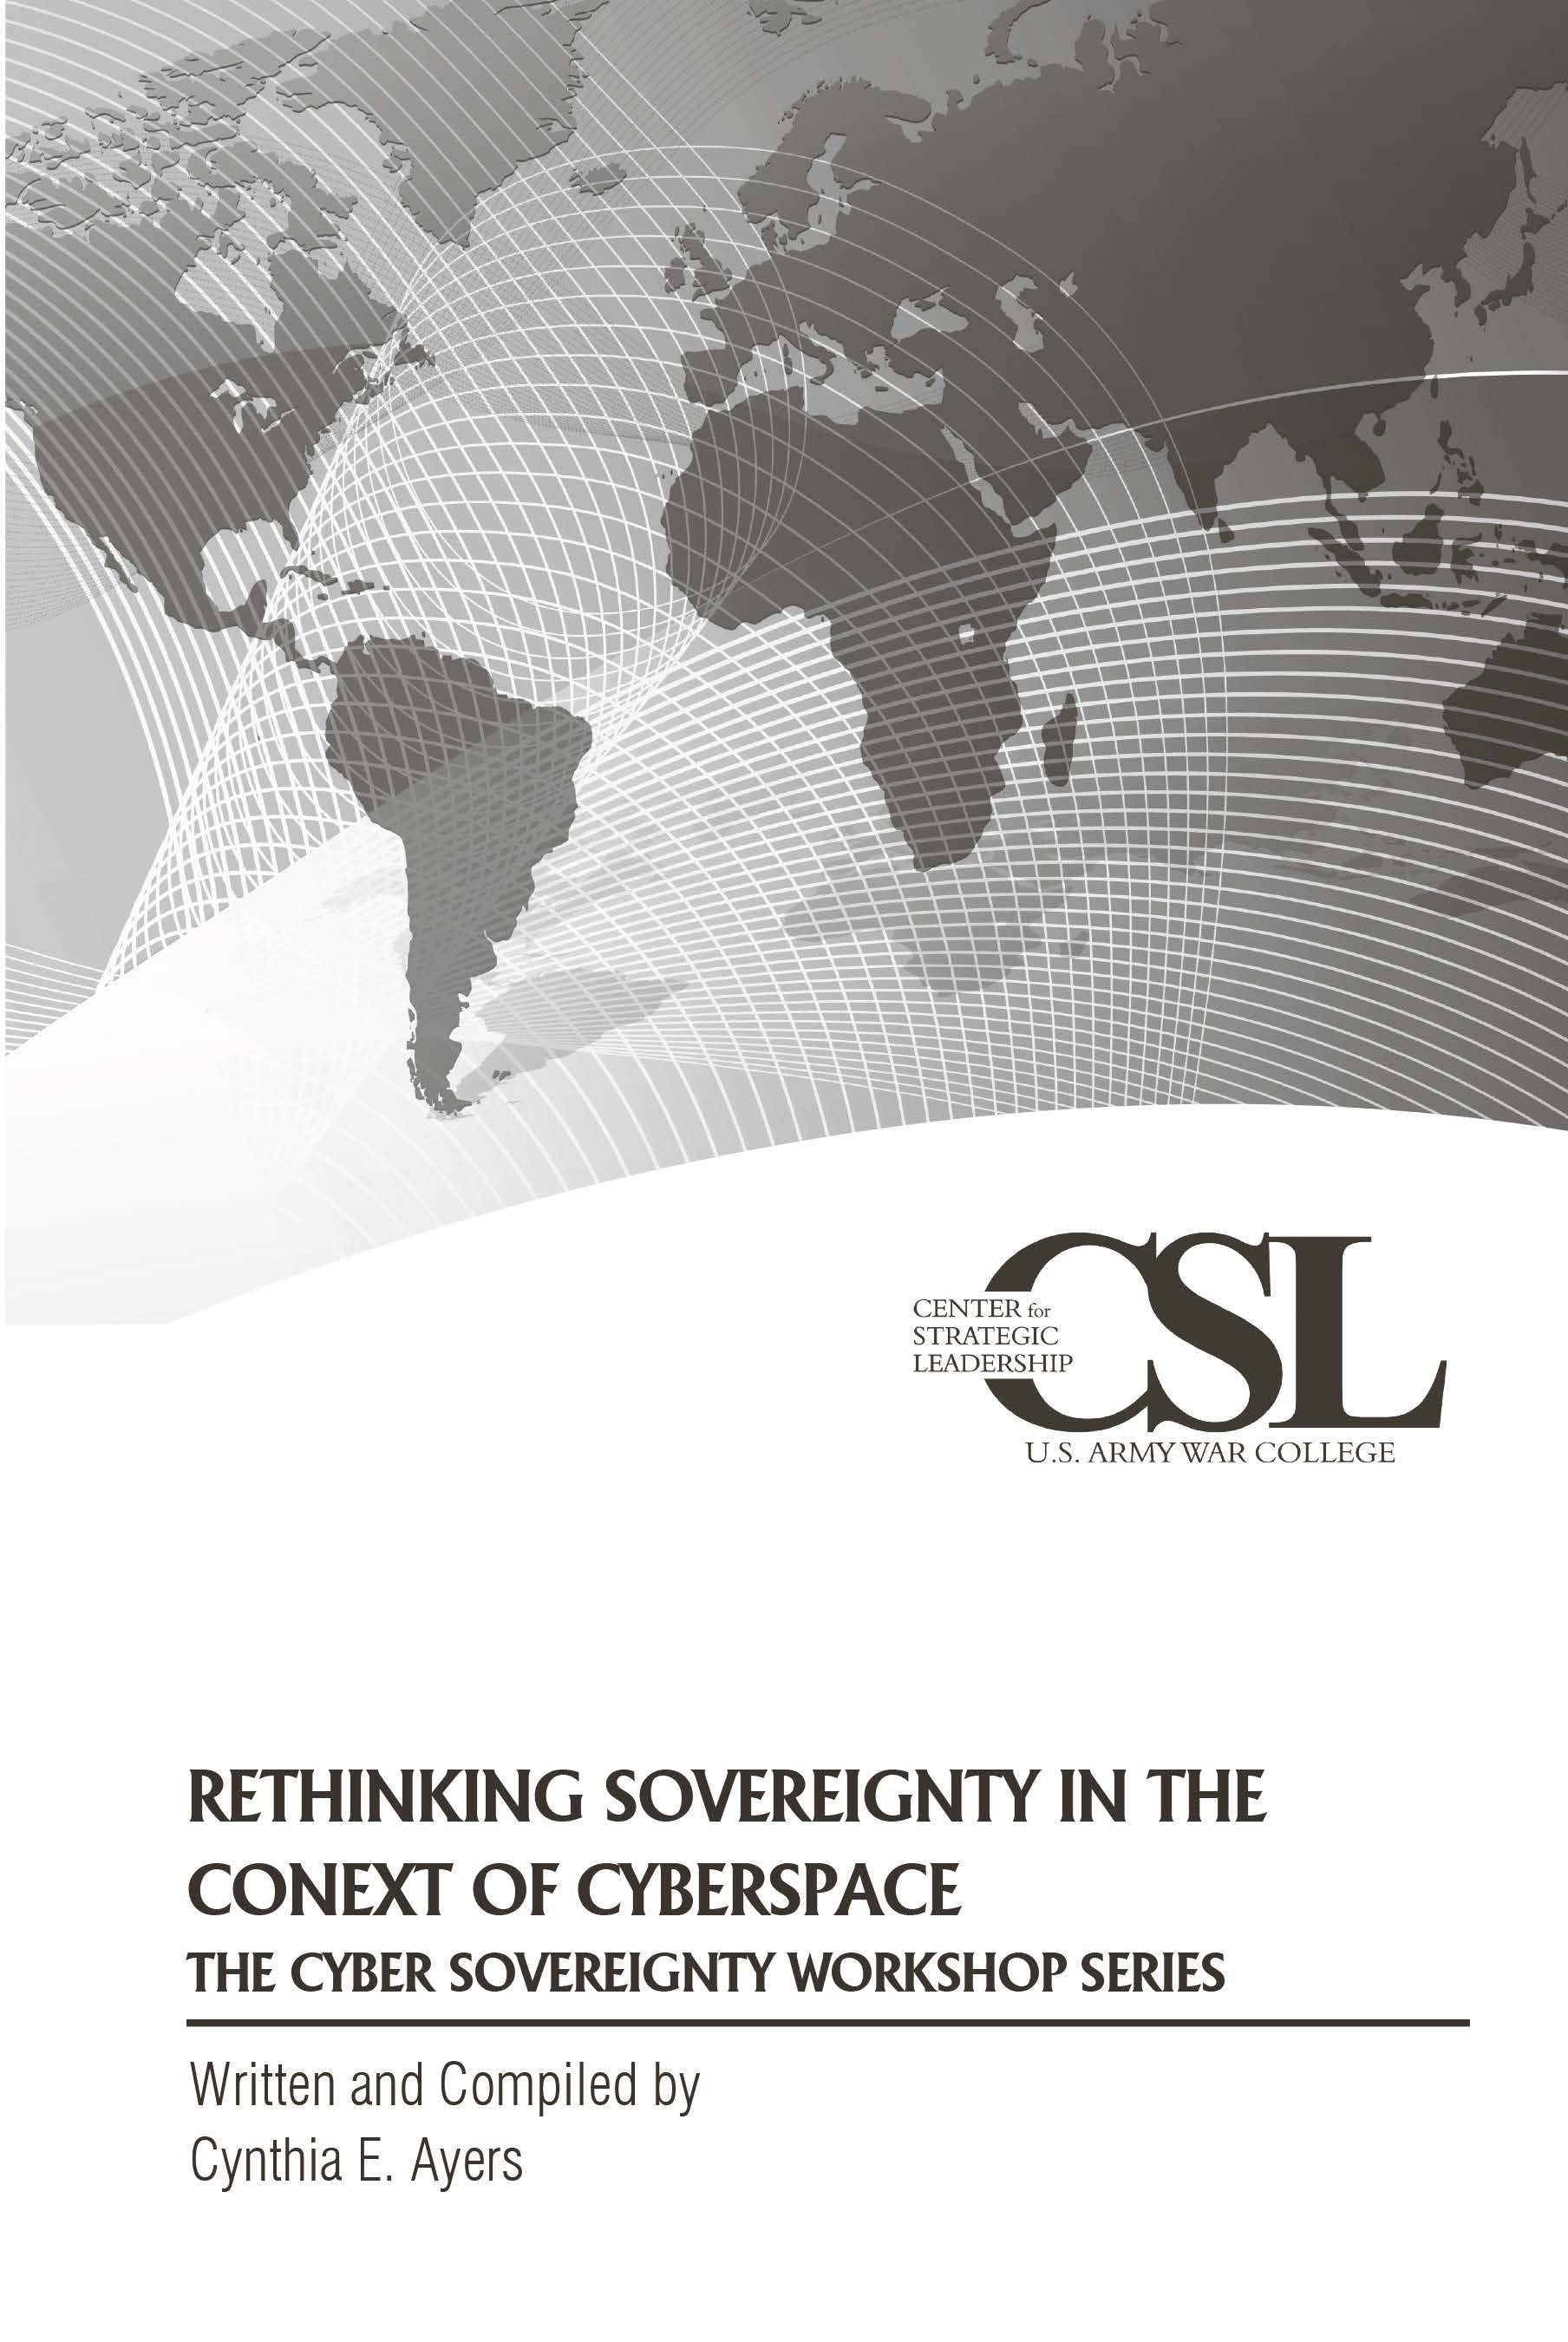 Rethinking Sovereignty in the Context of Cyberspace: The Cyber Sovereignty Workshop Series